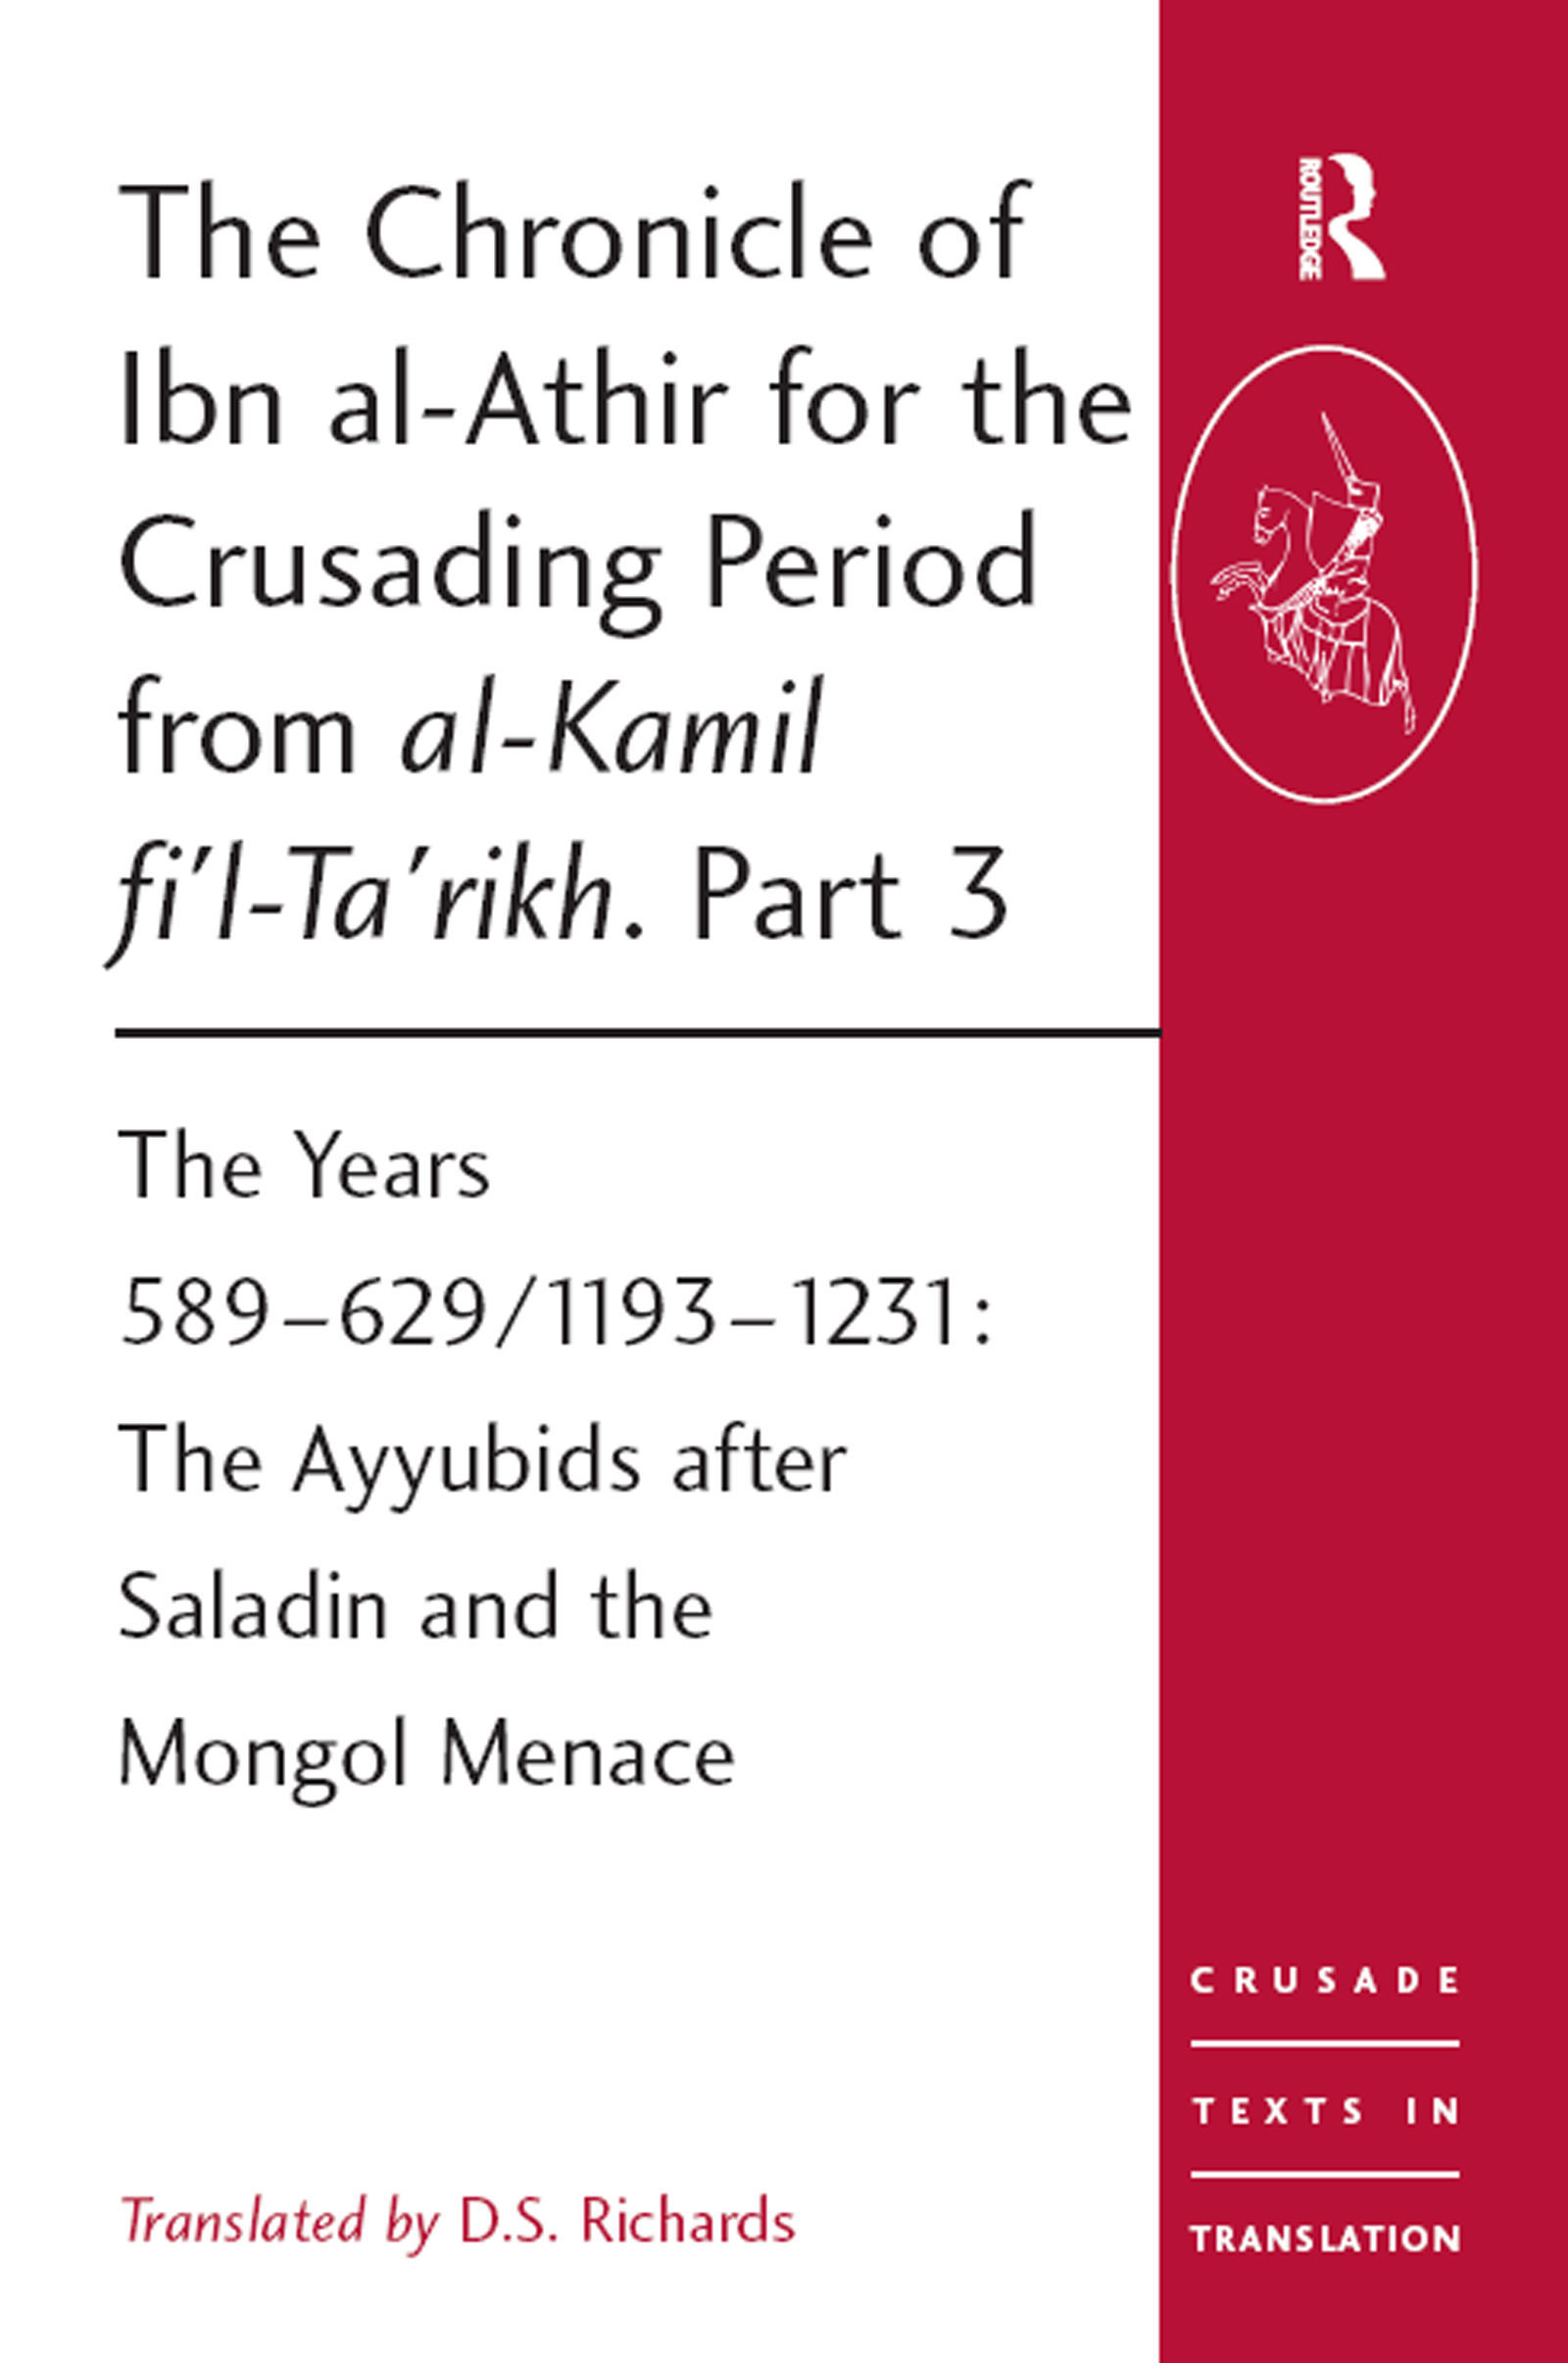 The Chronicle of Ibn al-Athir for the Crusading Period from al-Kamil fi'l-Ta'rikh. Part 3